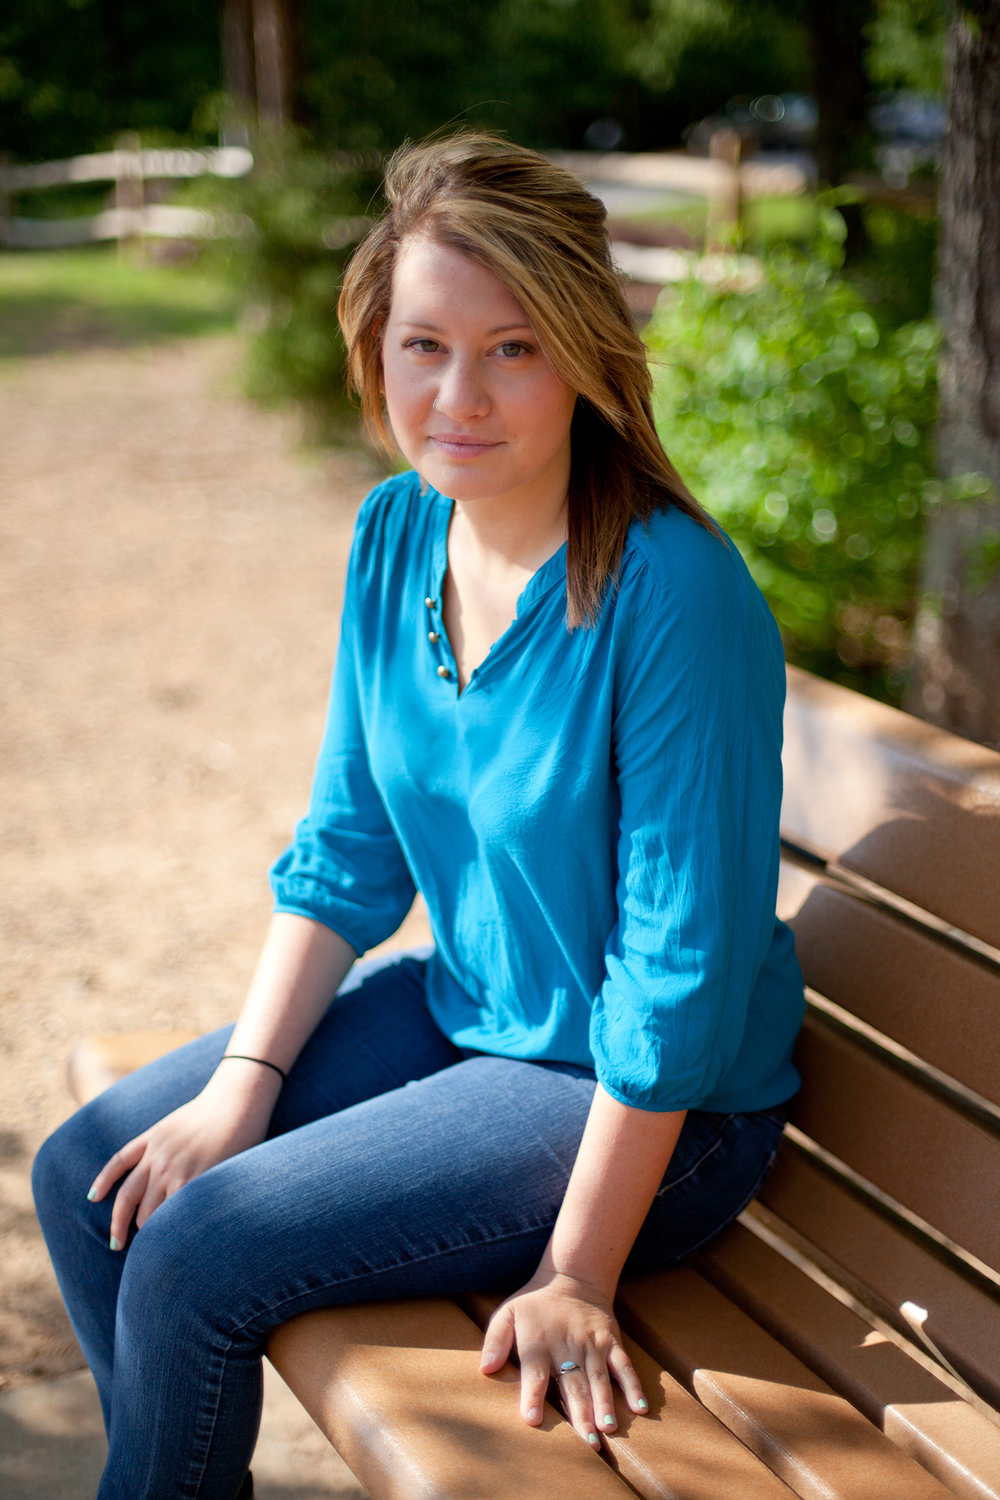 Portraits of a Girl at a Park in Cary, North Carolina